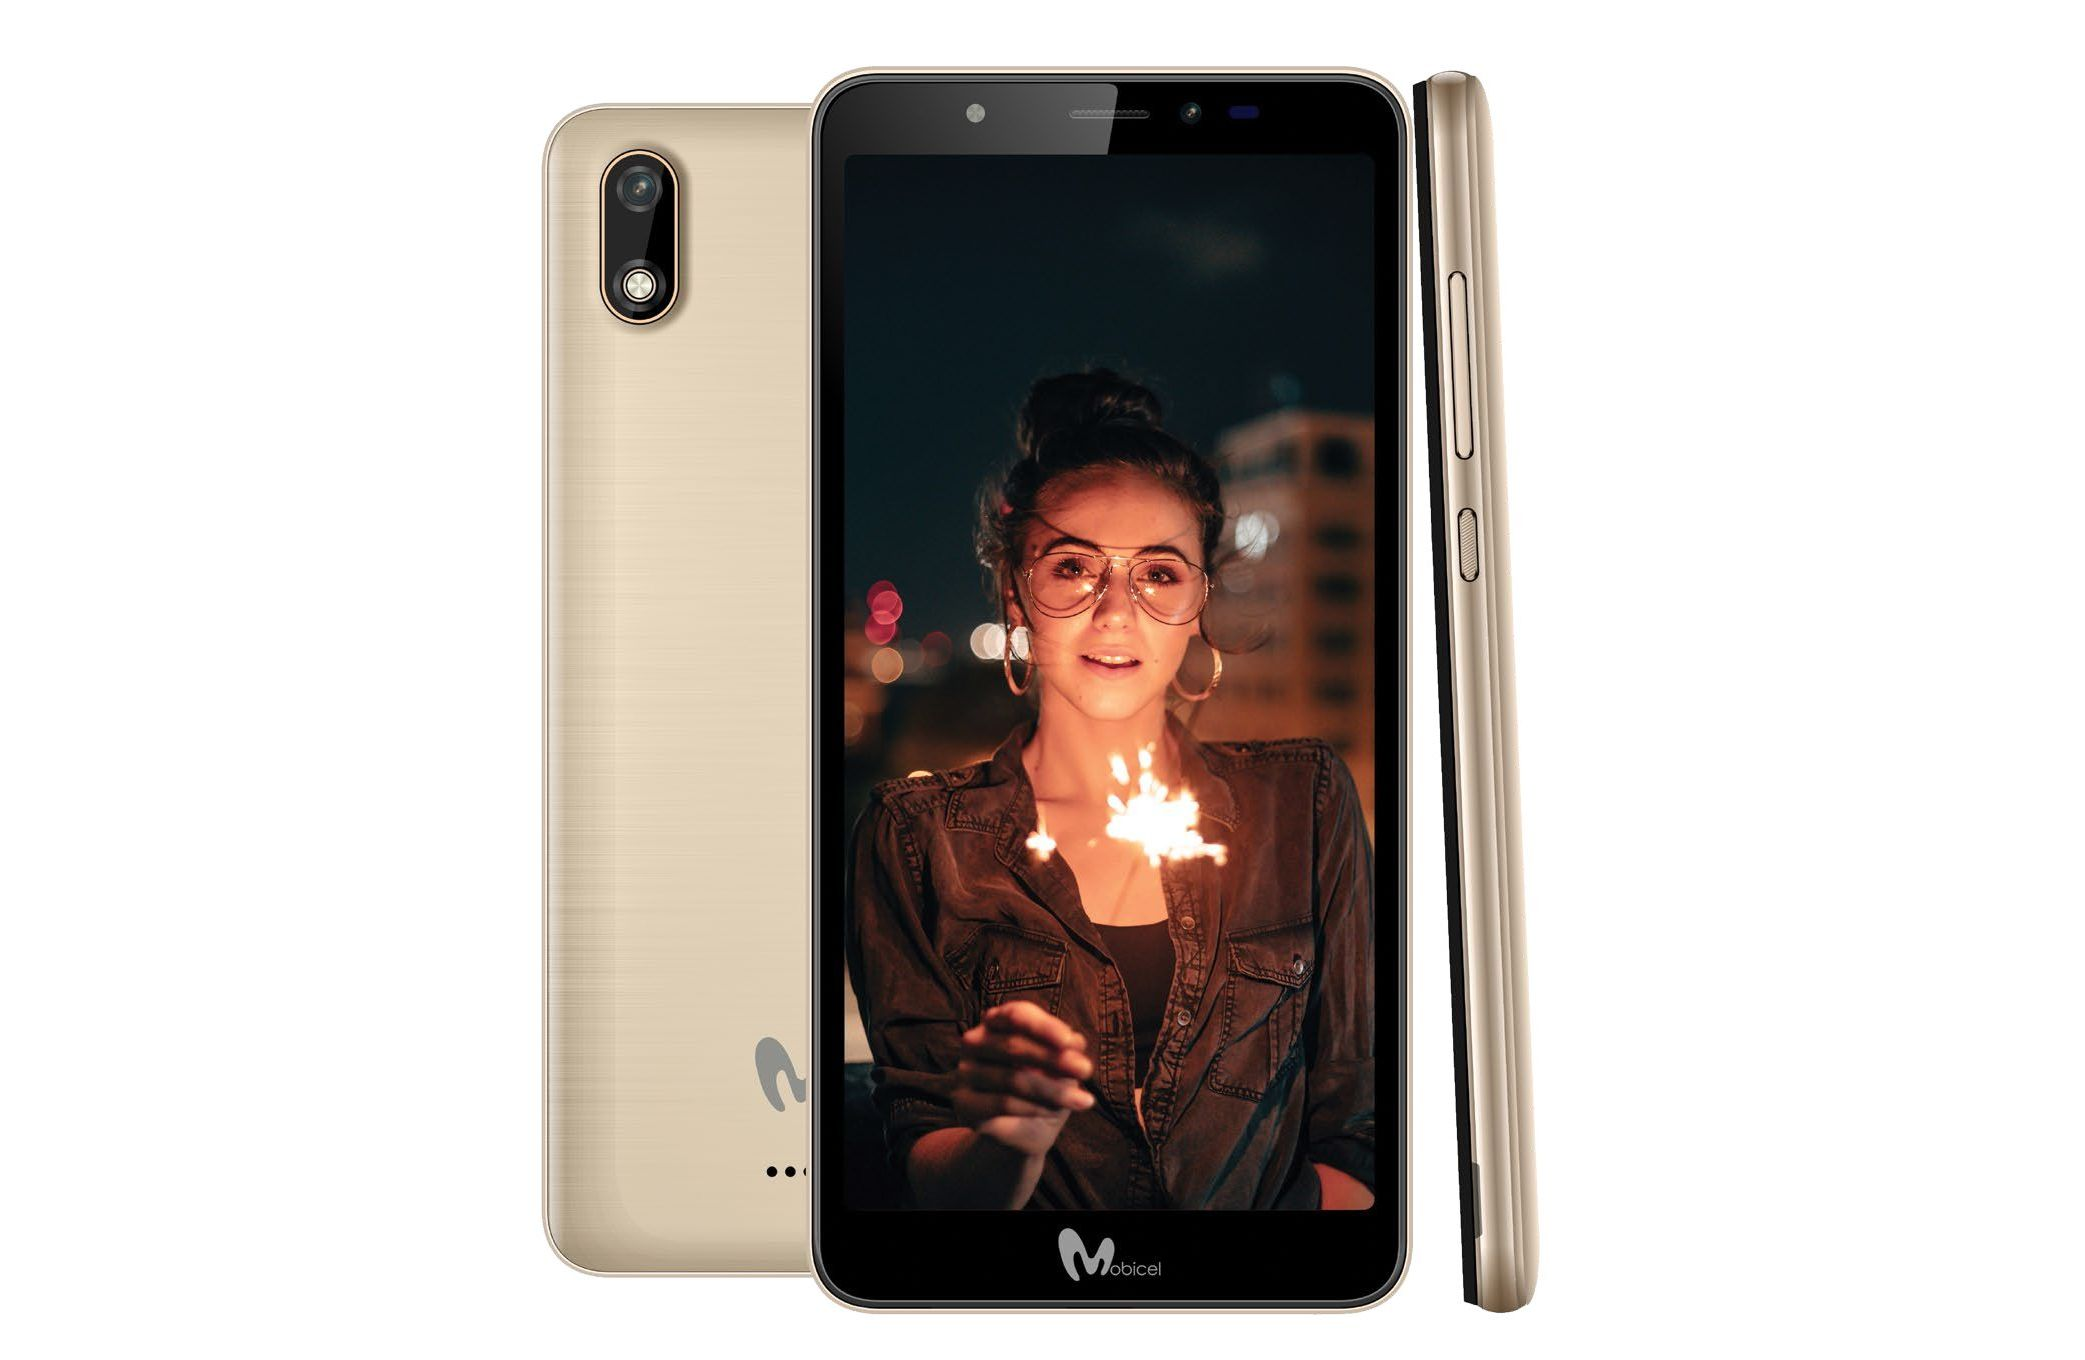 Mobicel Trendy 2 and Mobicel Hype